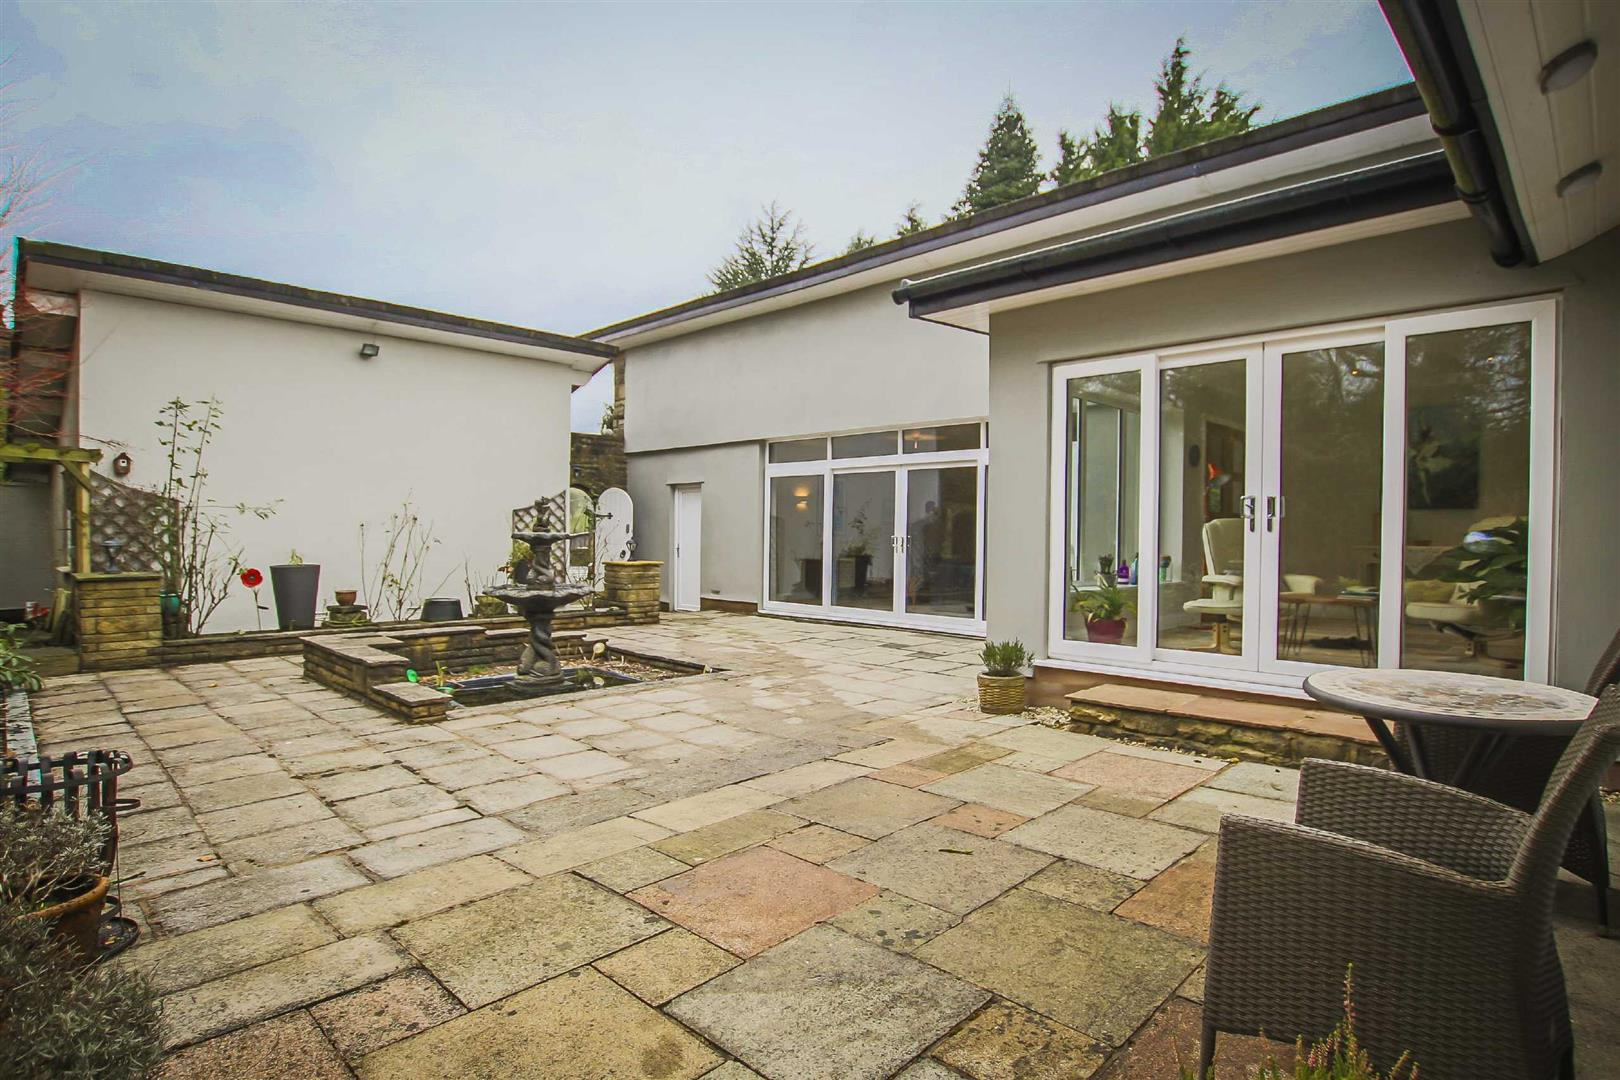 5 Bedroom Detached House For Sale - Image 27